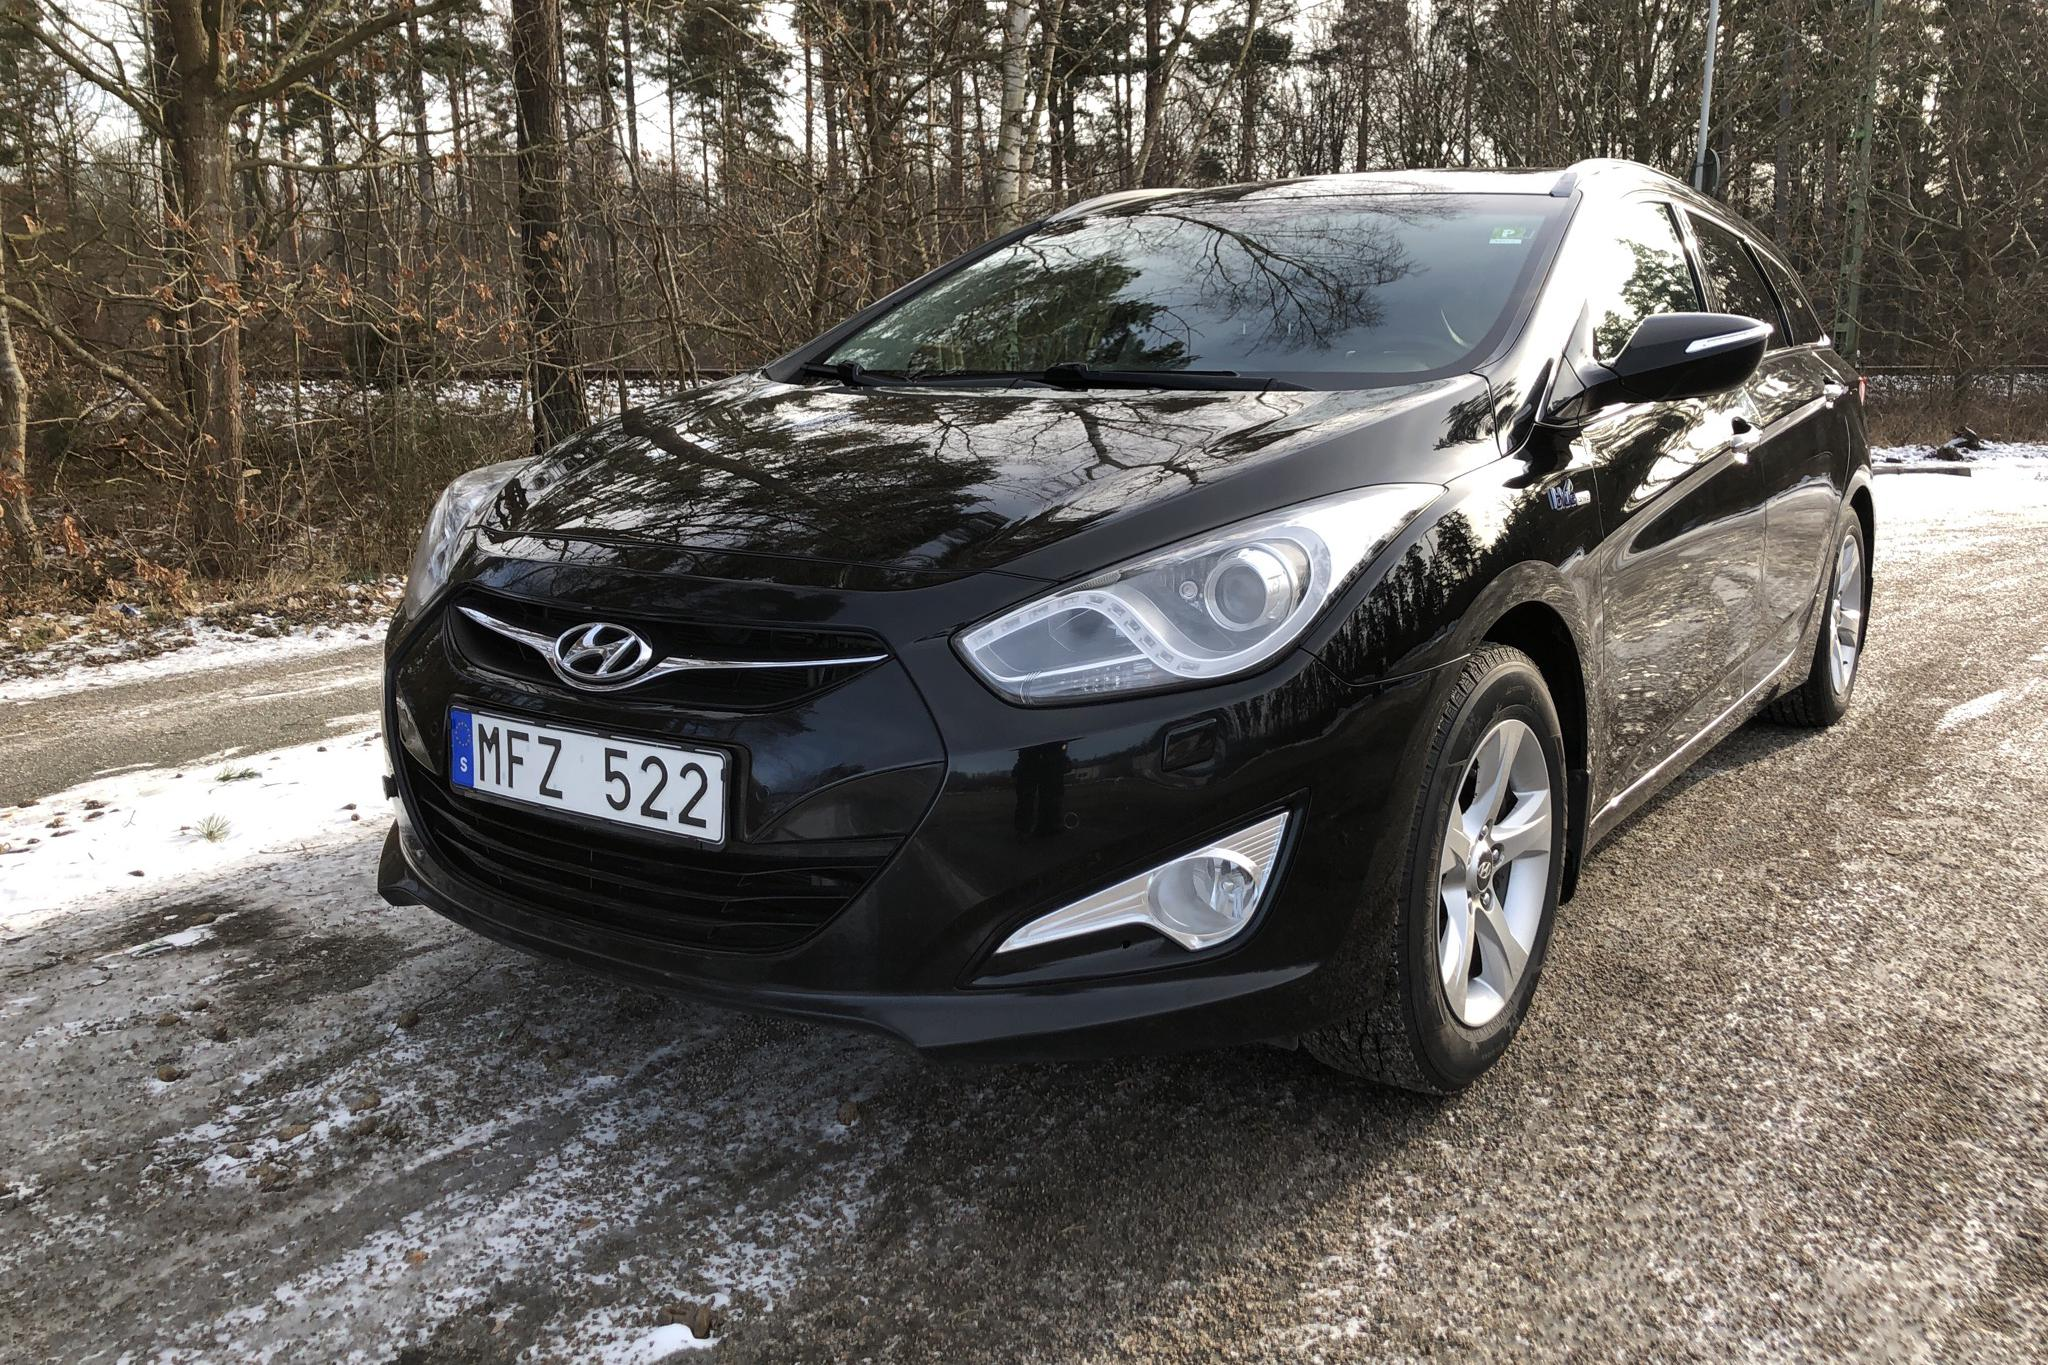 Hyundai i40 1.7 CRDi Kombi (136hk) - 179 350 km - Manual - black - 2012